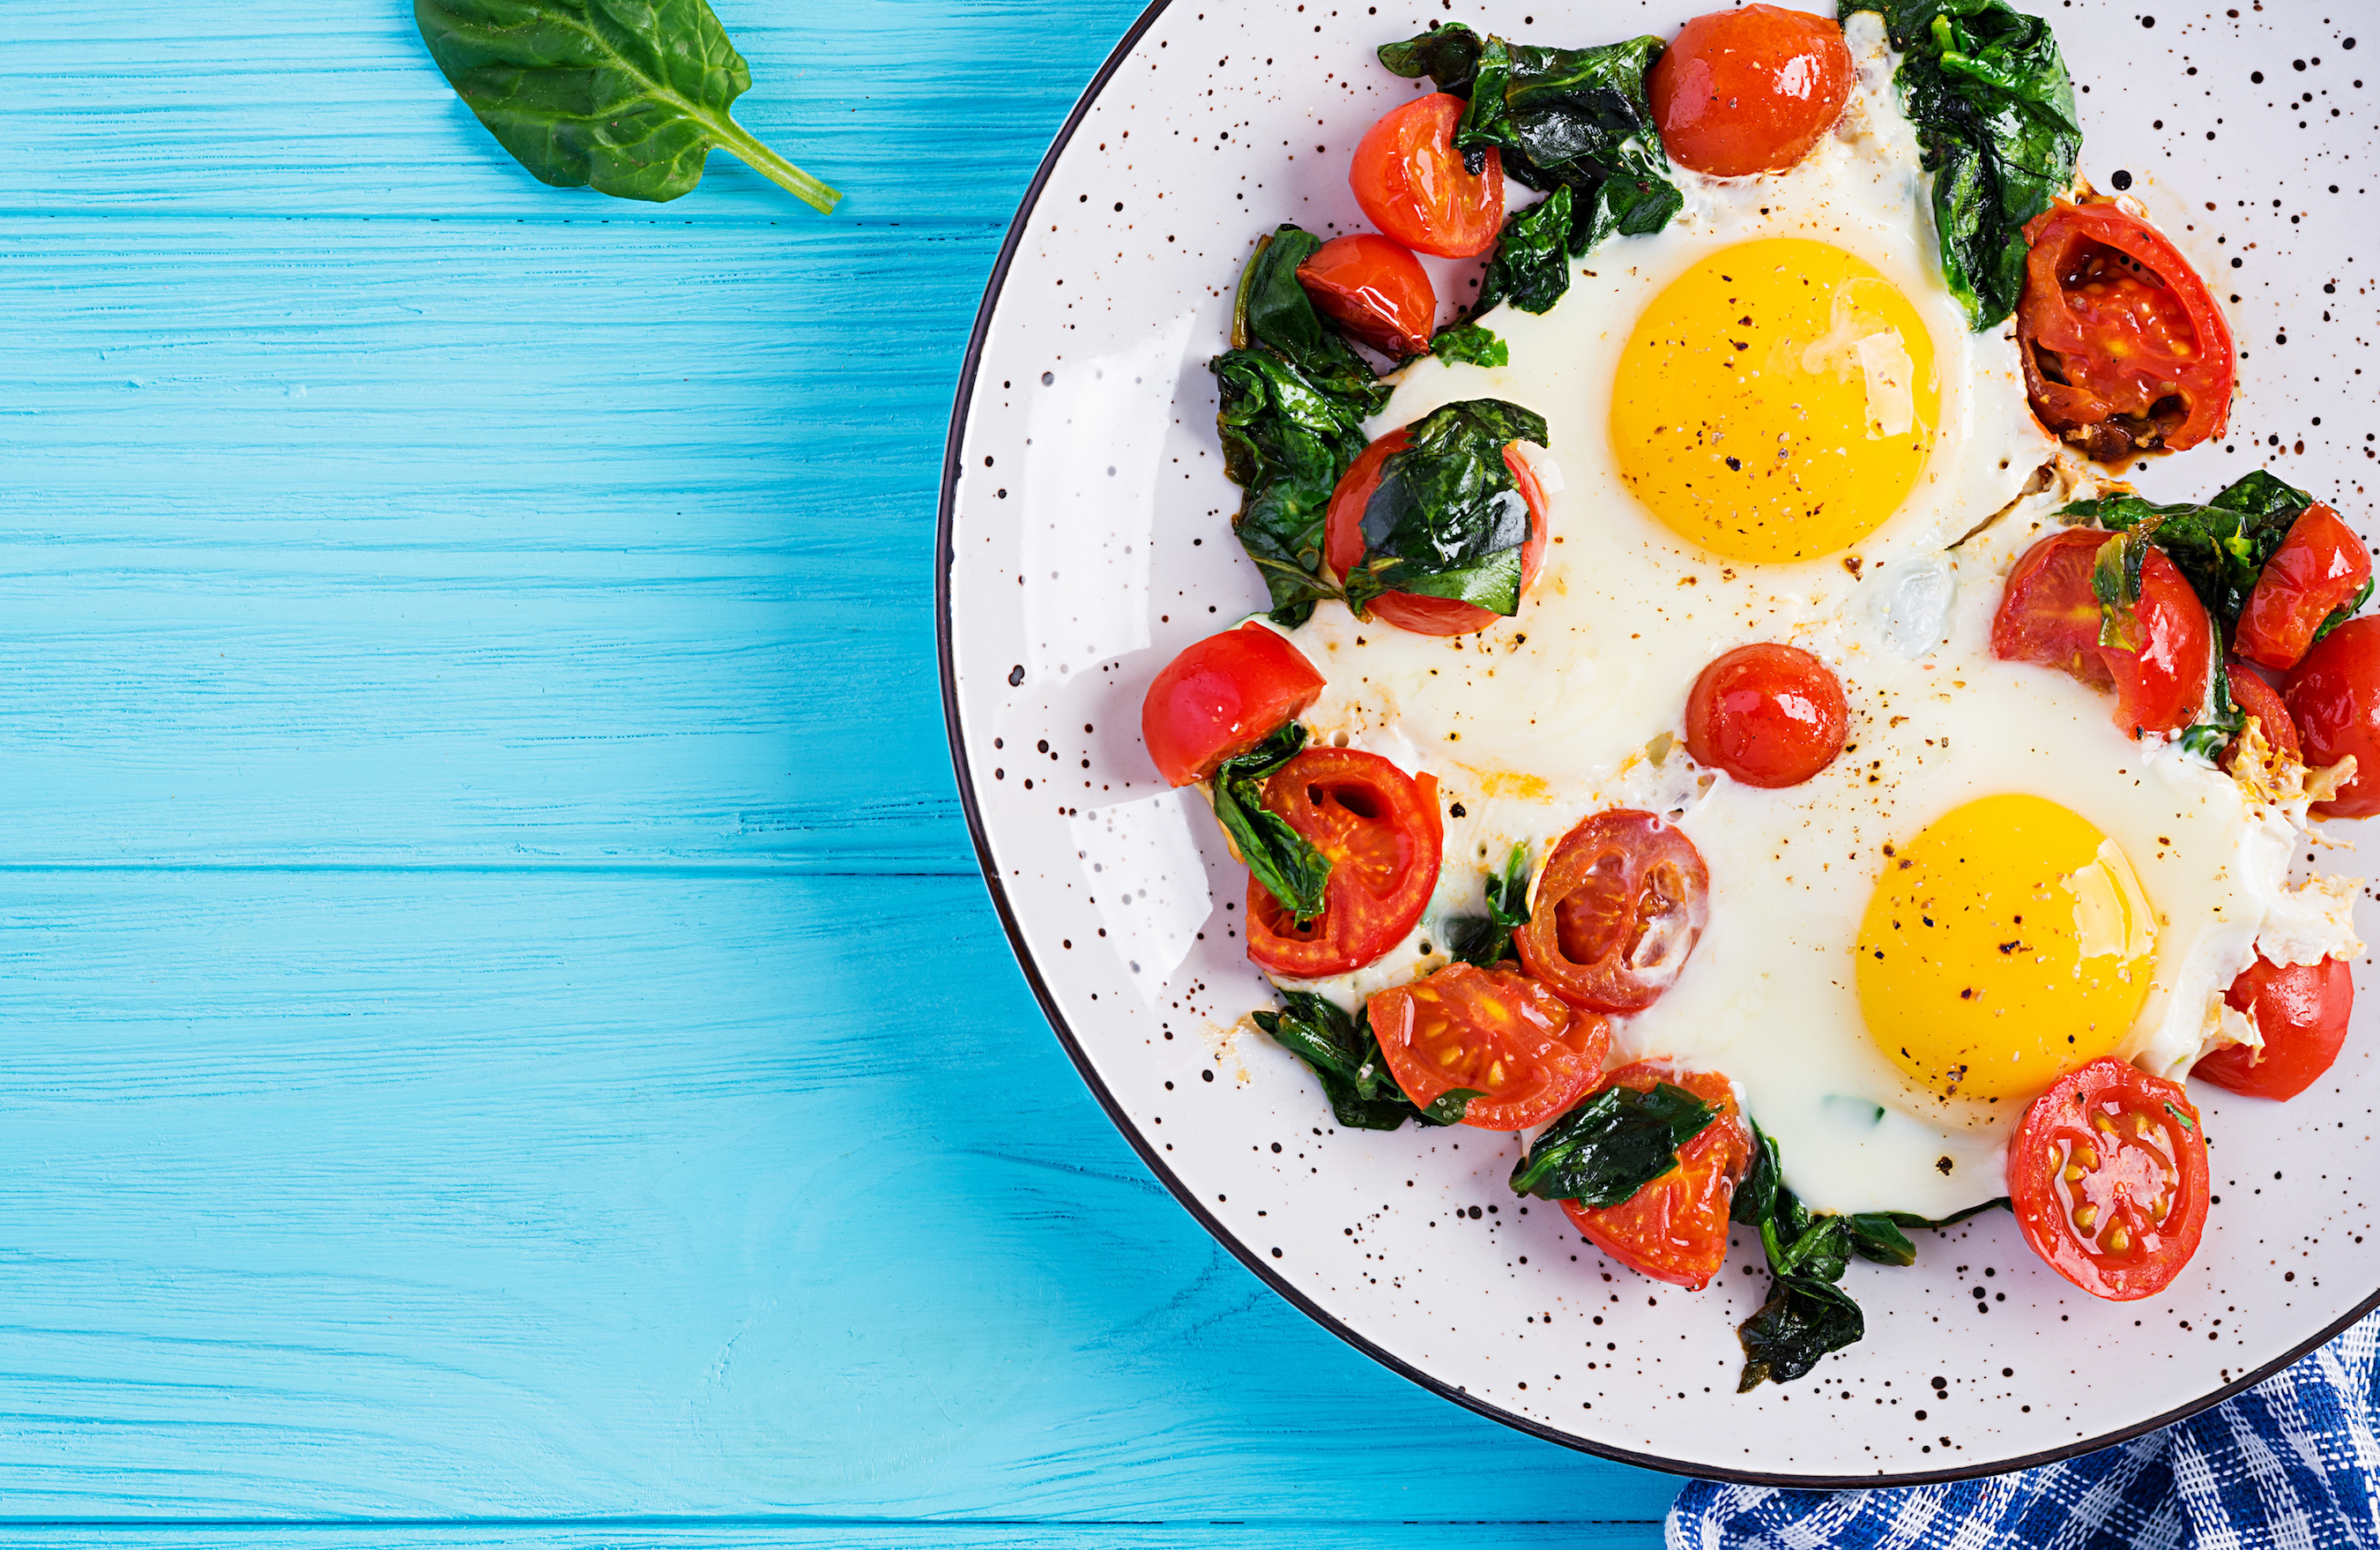 Fried Egg with spinach and tomatoes